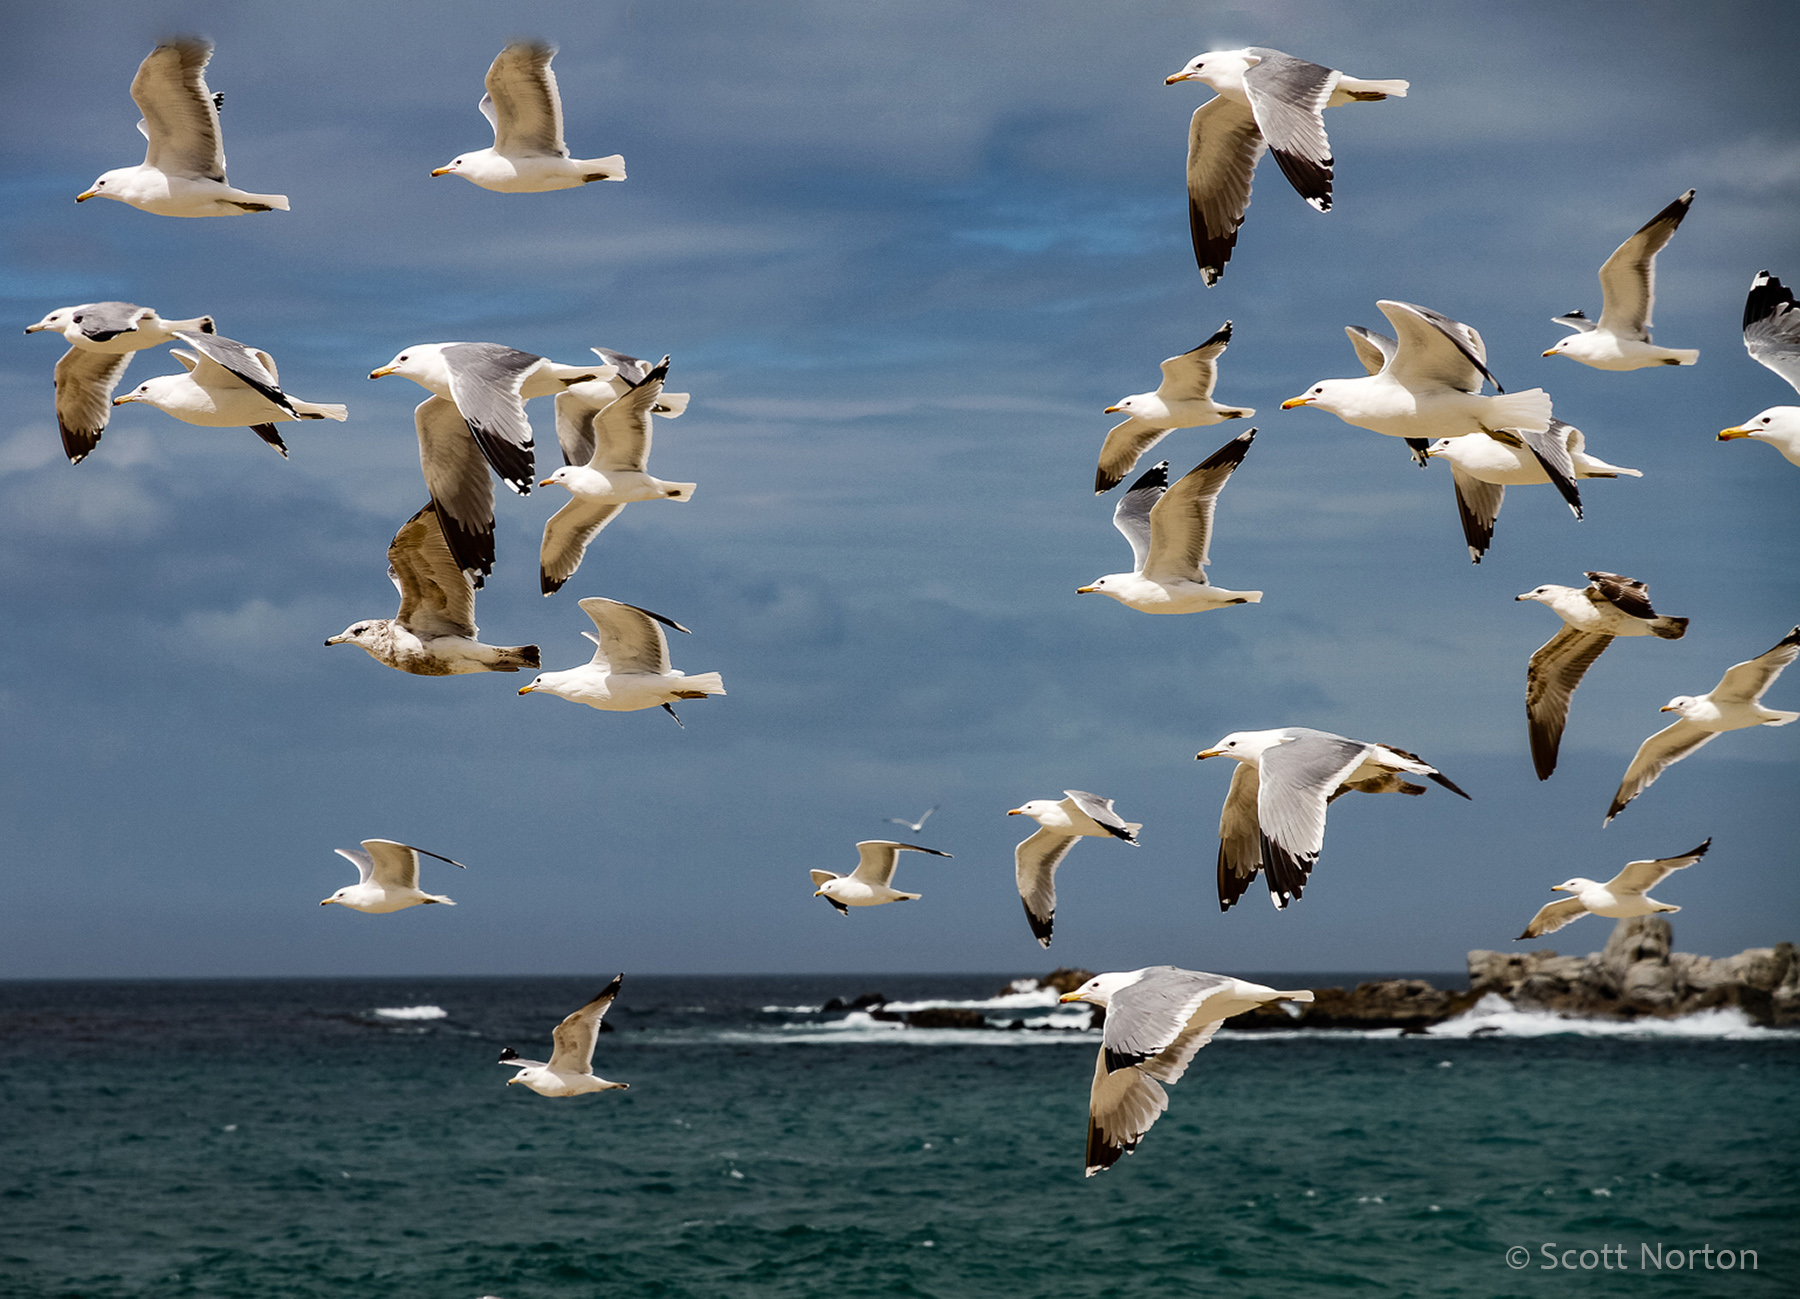 a flock of seagulls flying over carmel river beach by scott norton